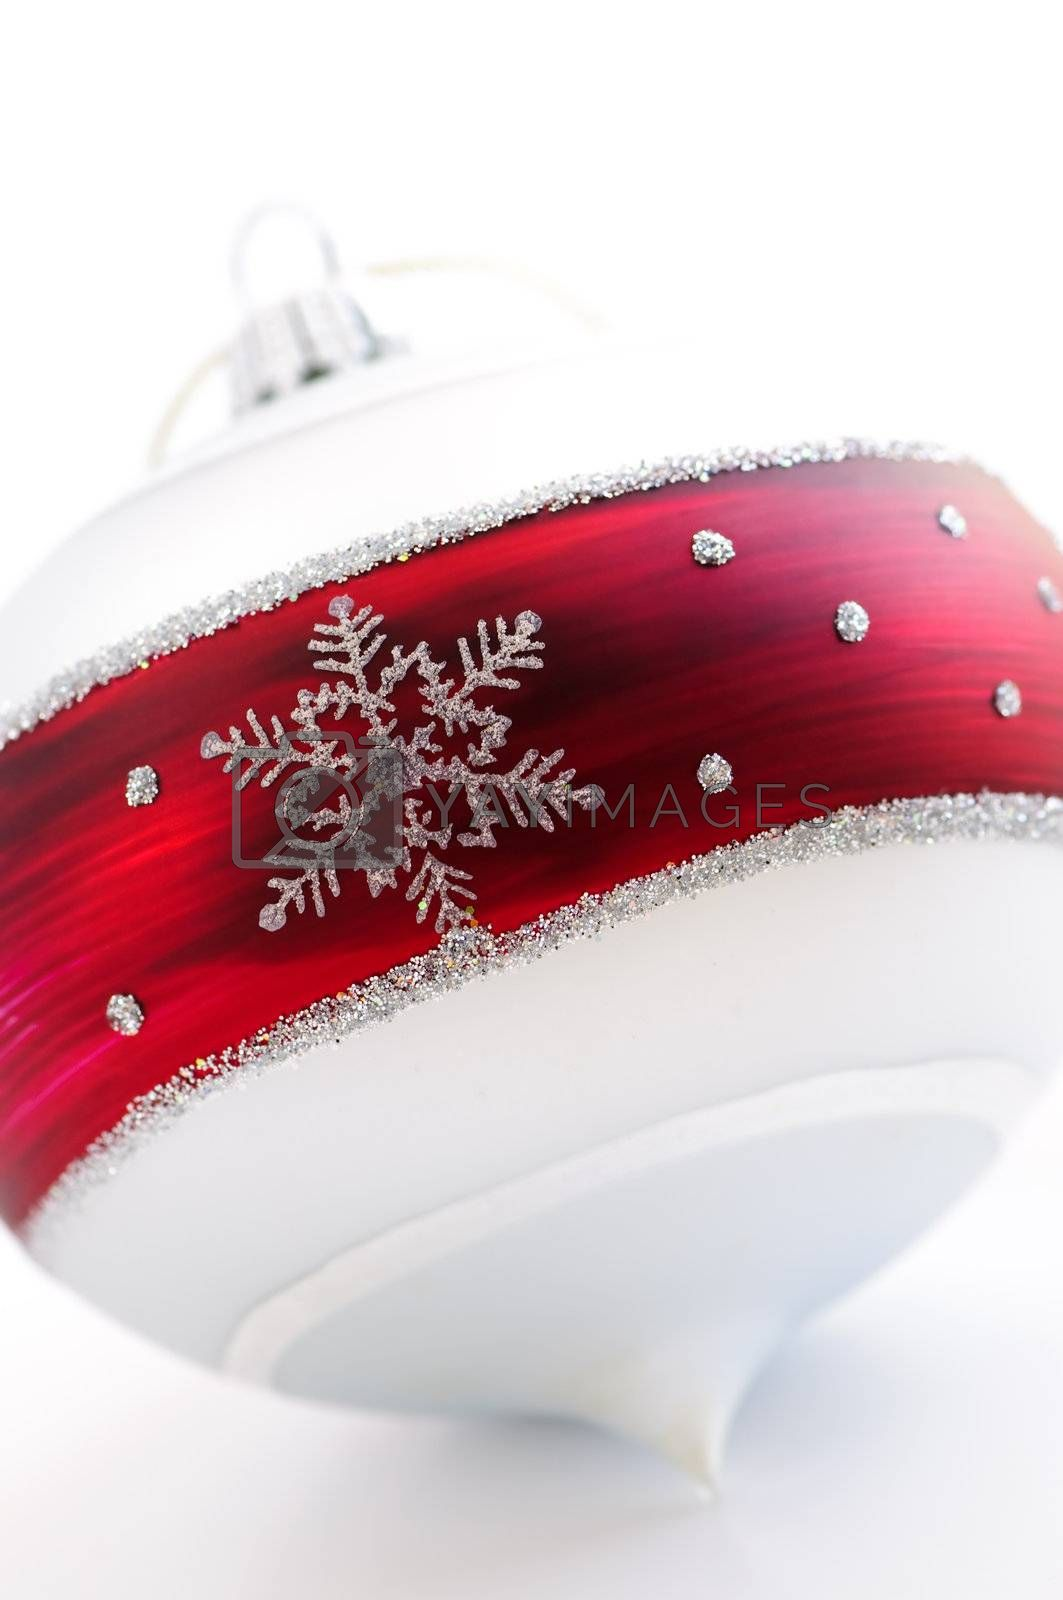 Royalty free image of Christmas ornament by elenathewise